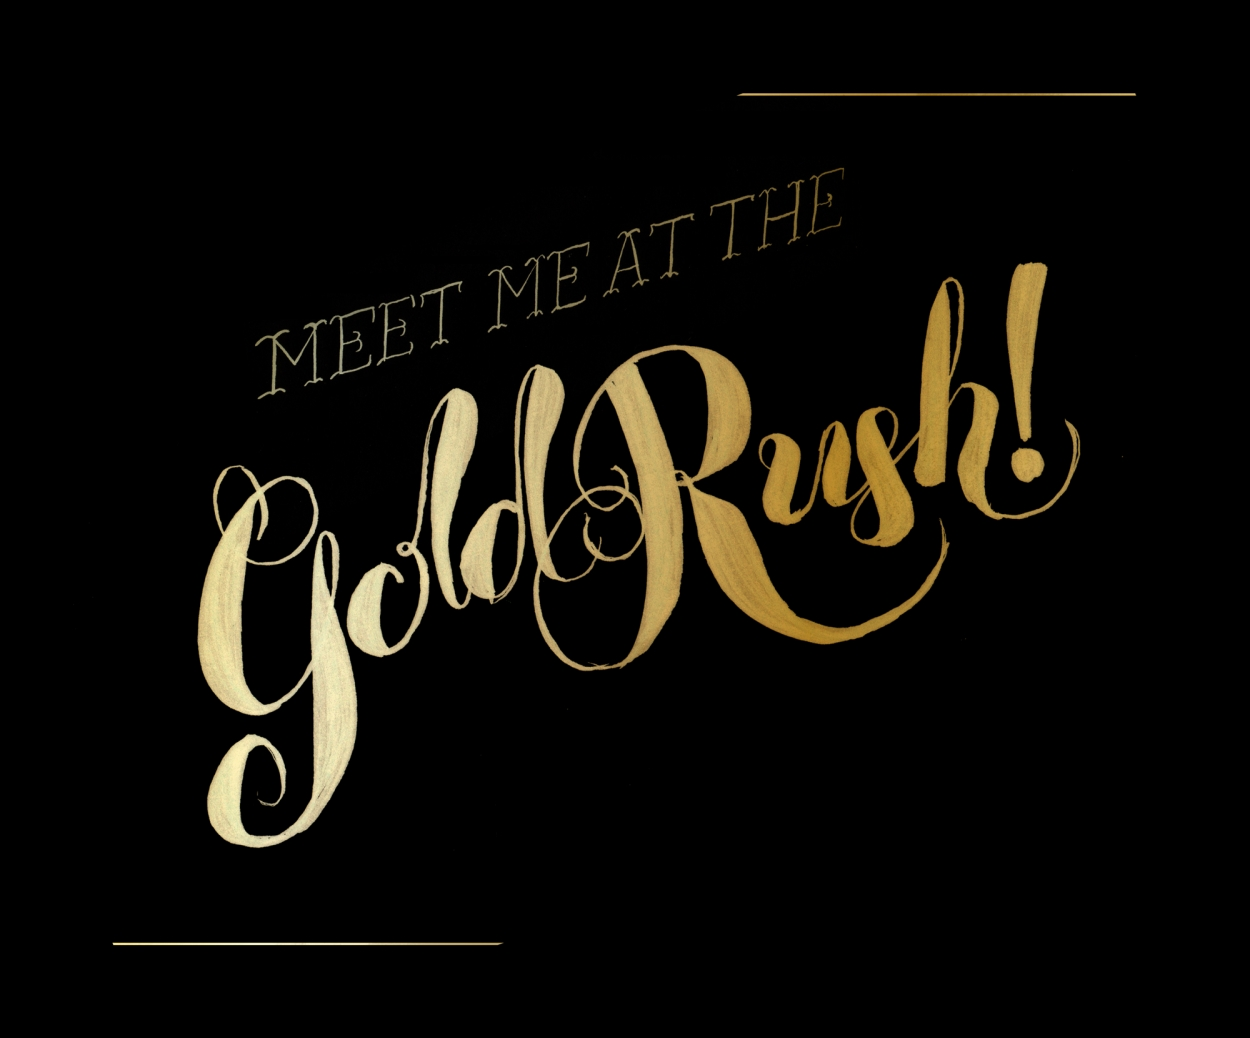 Meet me at the Gold Rush